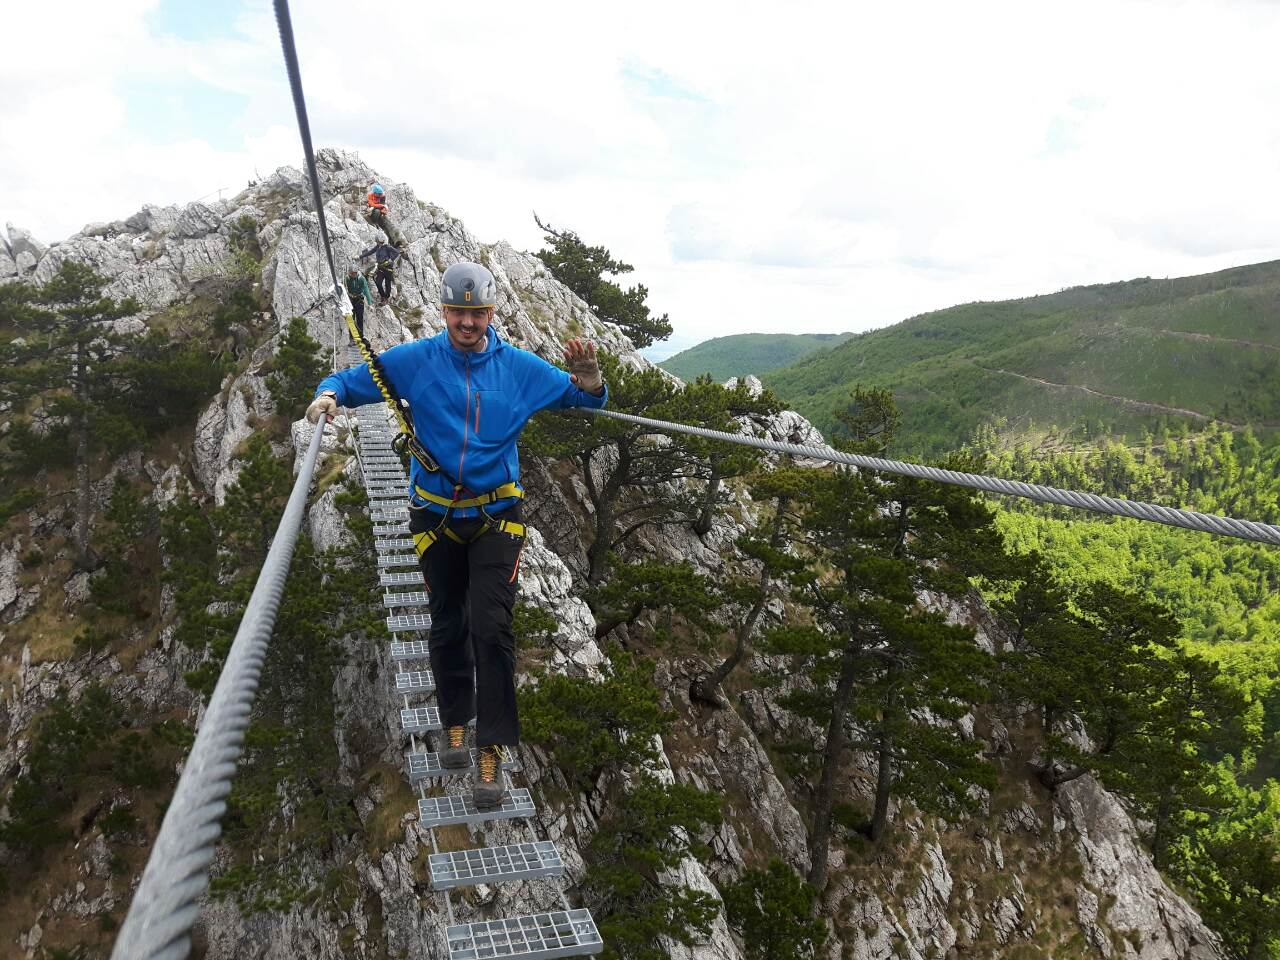 Via Ferata is one of the adventure tourism attractions along newly developed Mokra Gora Mountain trail (Photo: Institute for Territorial Economic Development)